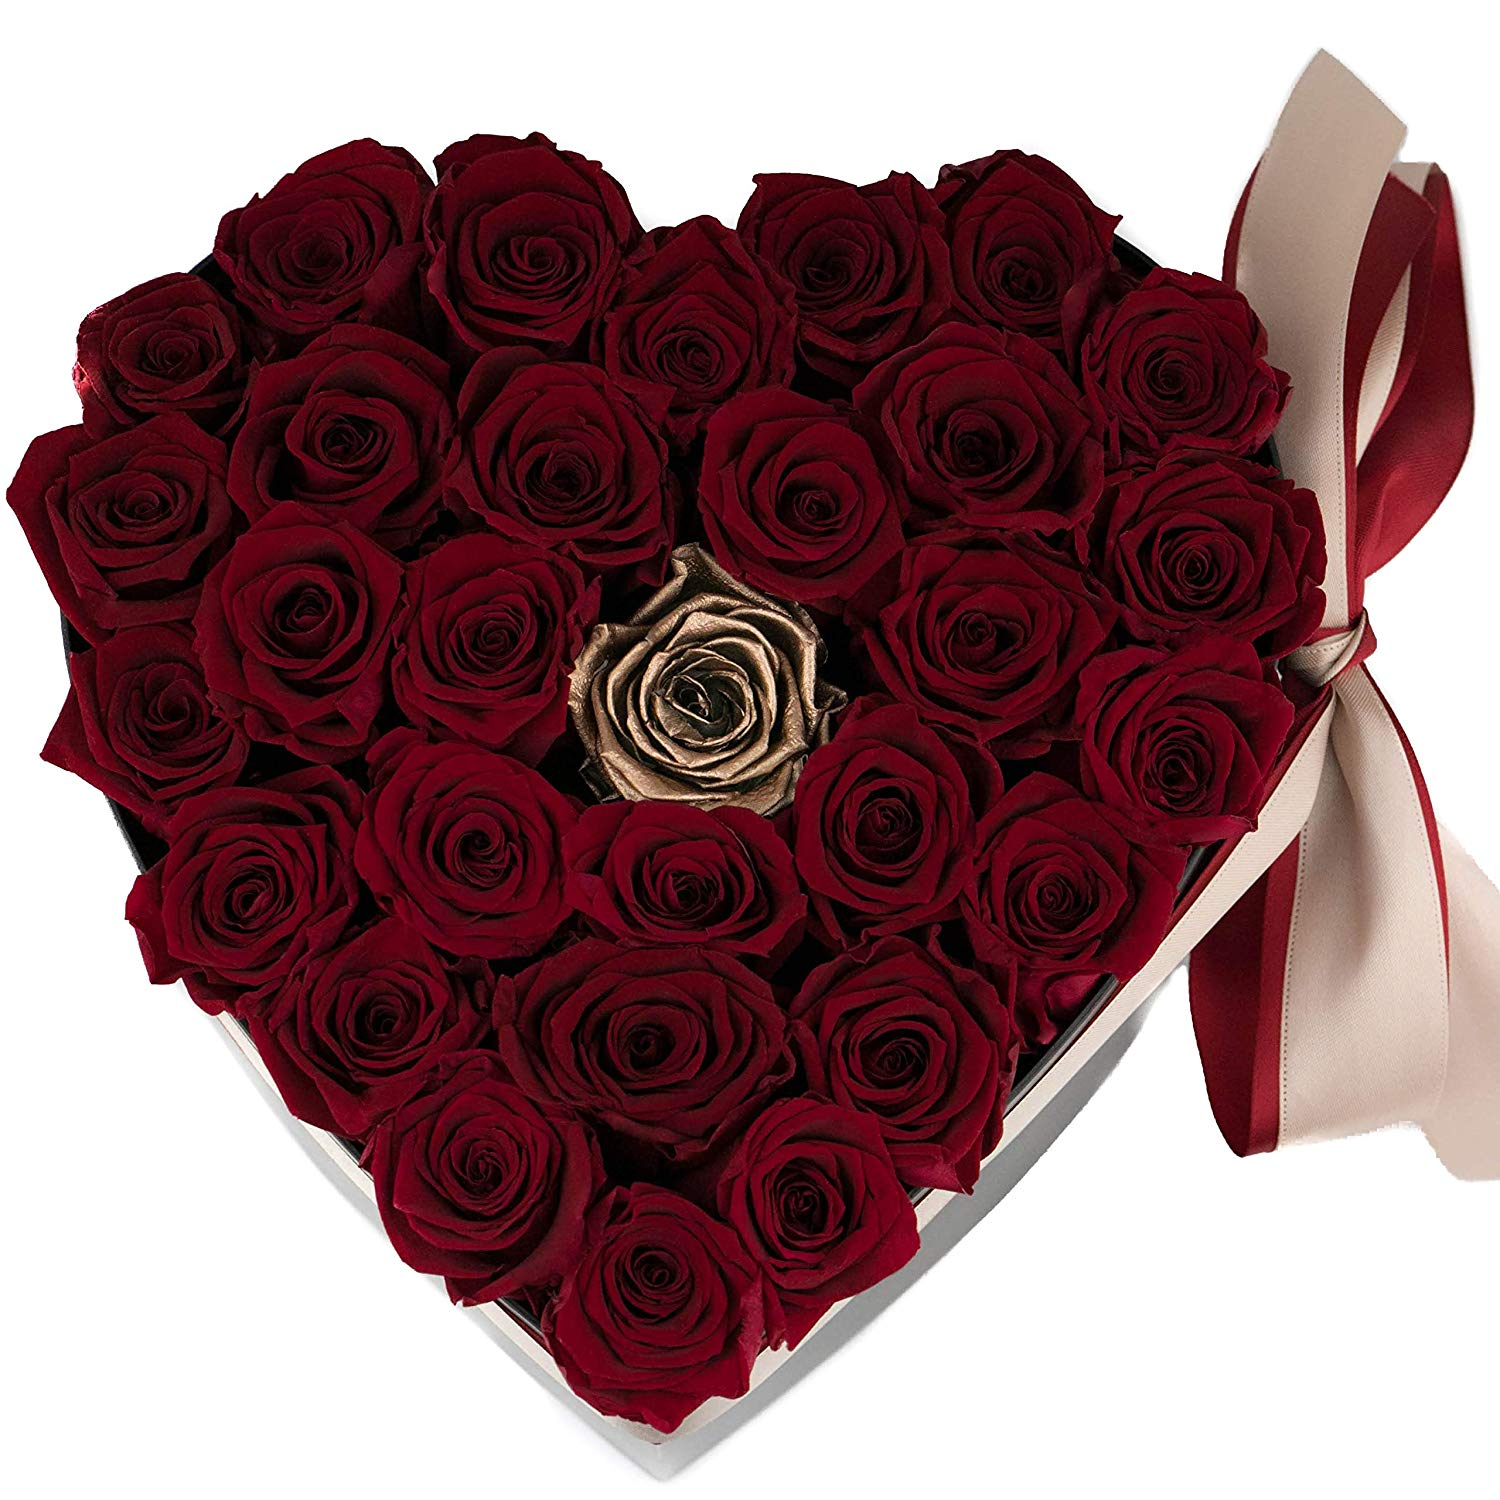 Cheap Real Red Roses Find Real Red Roses Deals On Line At